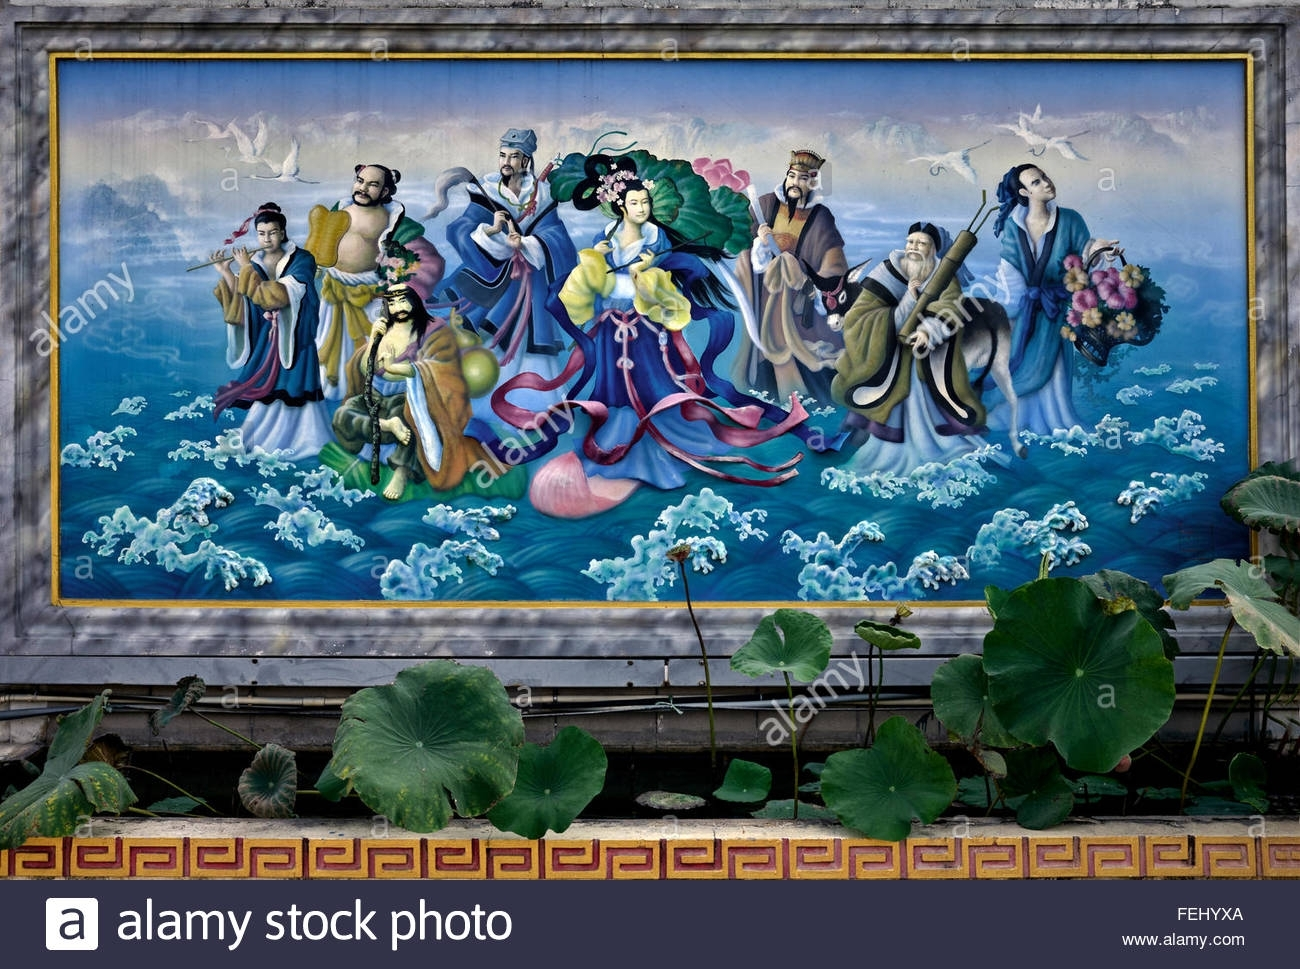 Chinese Wall Art Painting. Surreal Stock Photo: 95052114 - Alamy in Chinese Wall Art (Image 12 of 20)